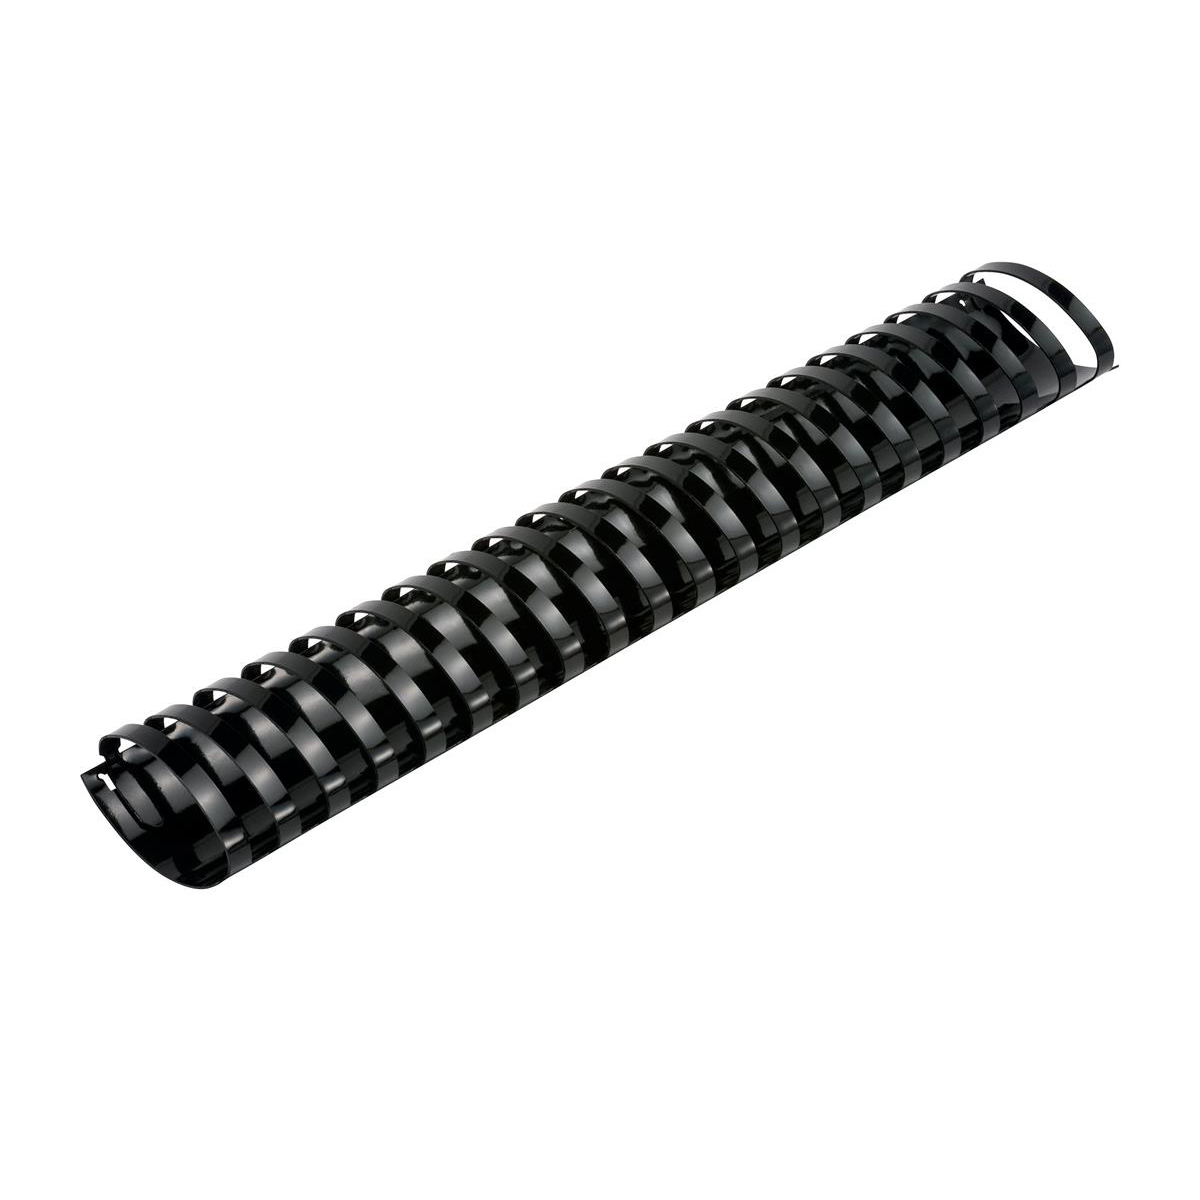 Binding Combs 5 Star Office Binding Combs Plastic 21 Ring 425 Sheets A4 50mm Black Pack 50